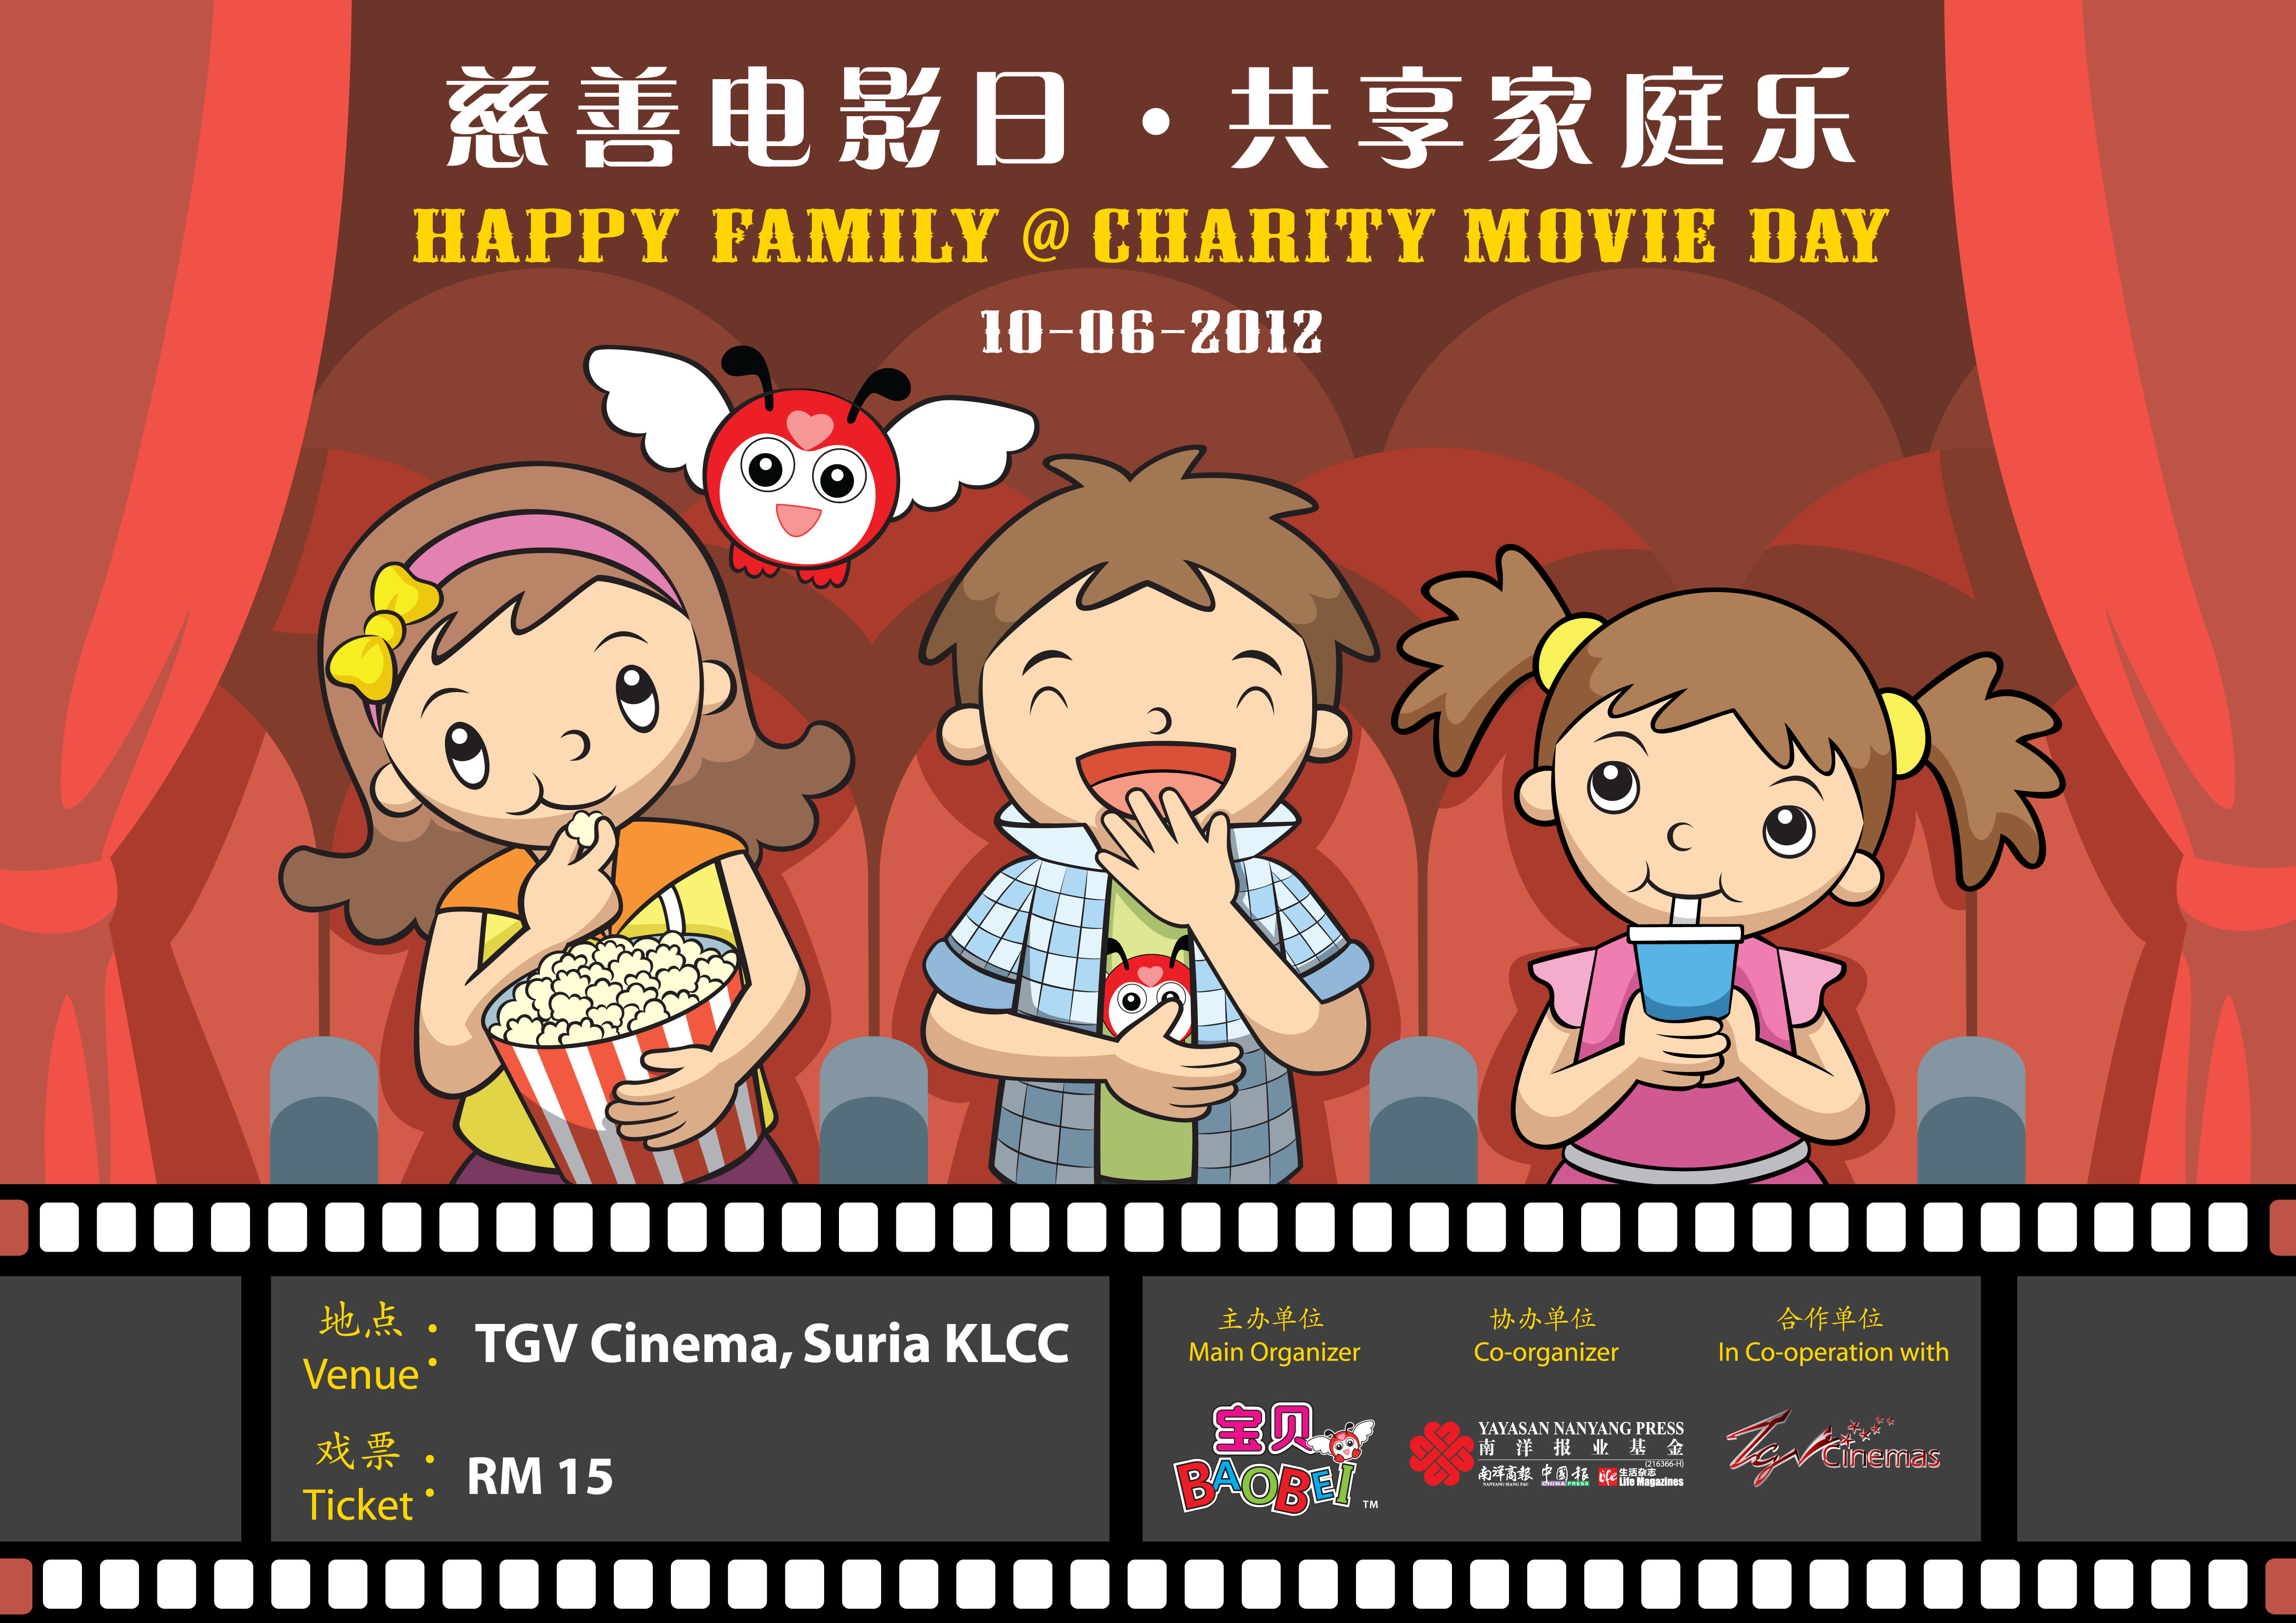 Happy Family Charity Movie Day